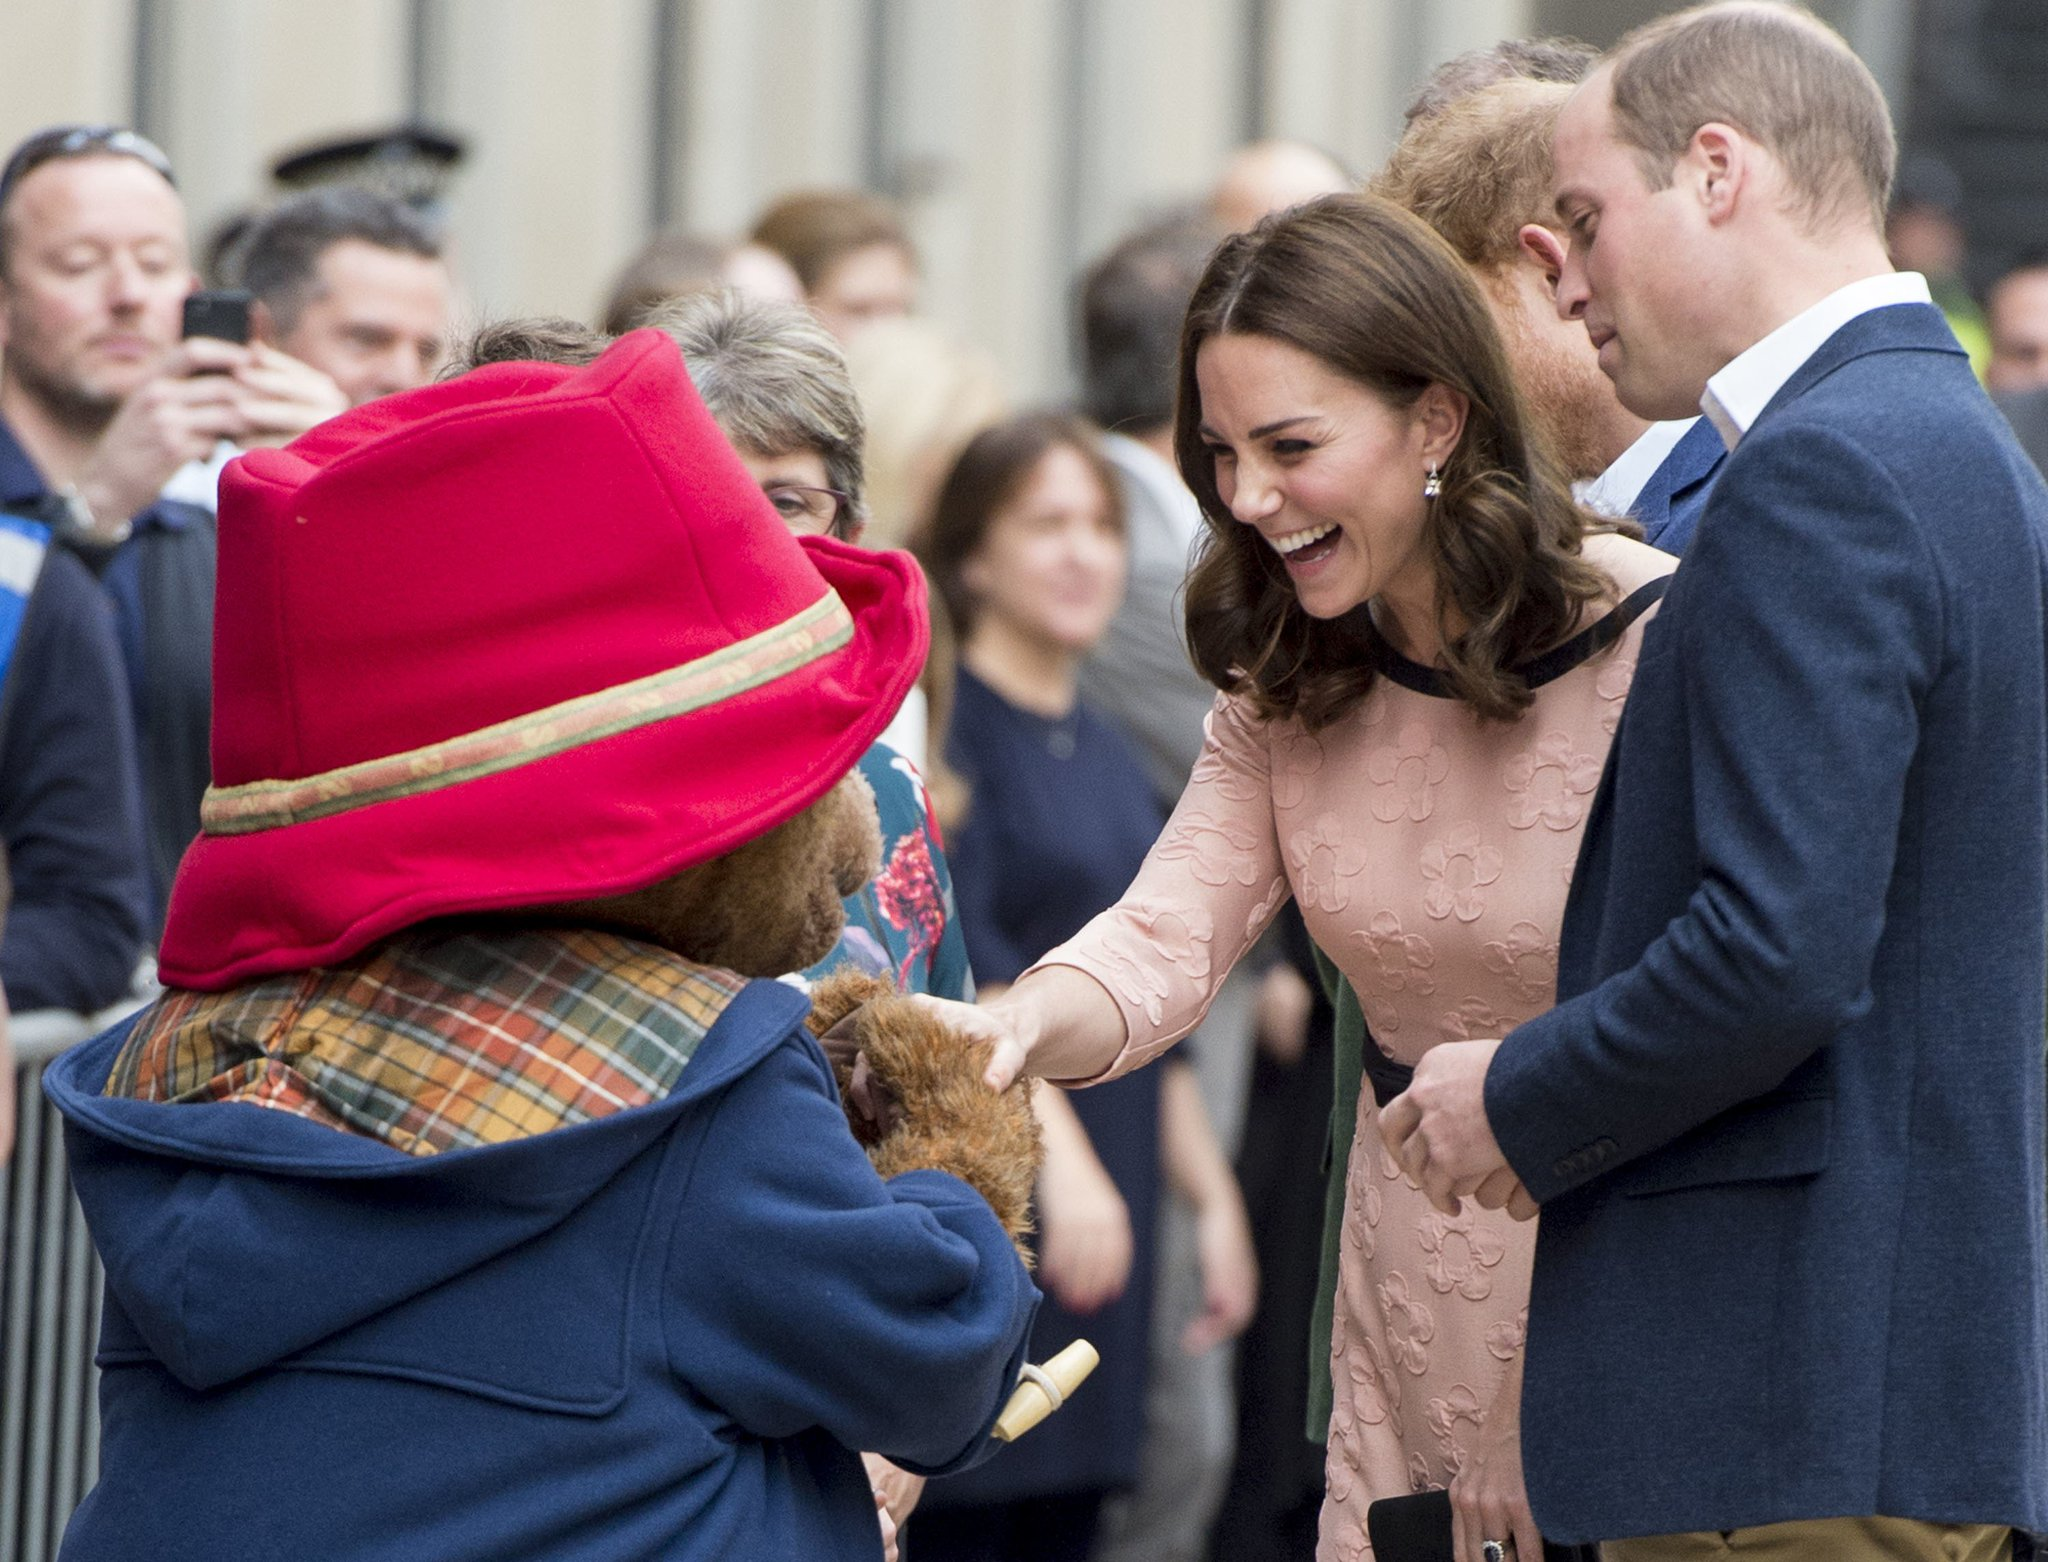 Kate Middleton dancing with Paddington Bear will make your day: https://t.co/64mGMT7gk6 https://t.co/NUPzGj3XvK